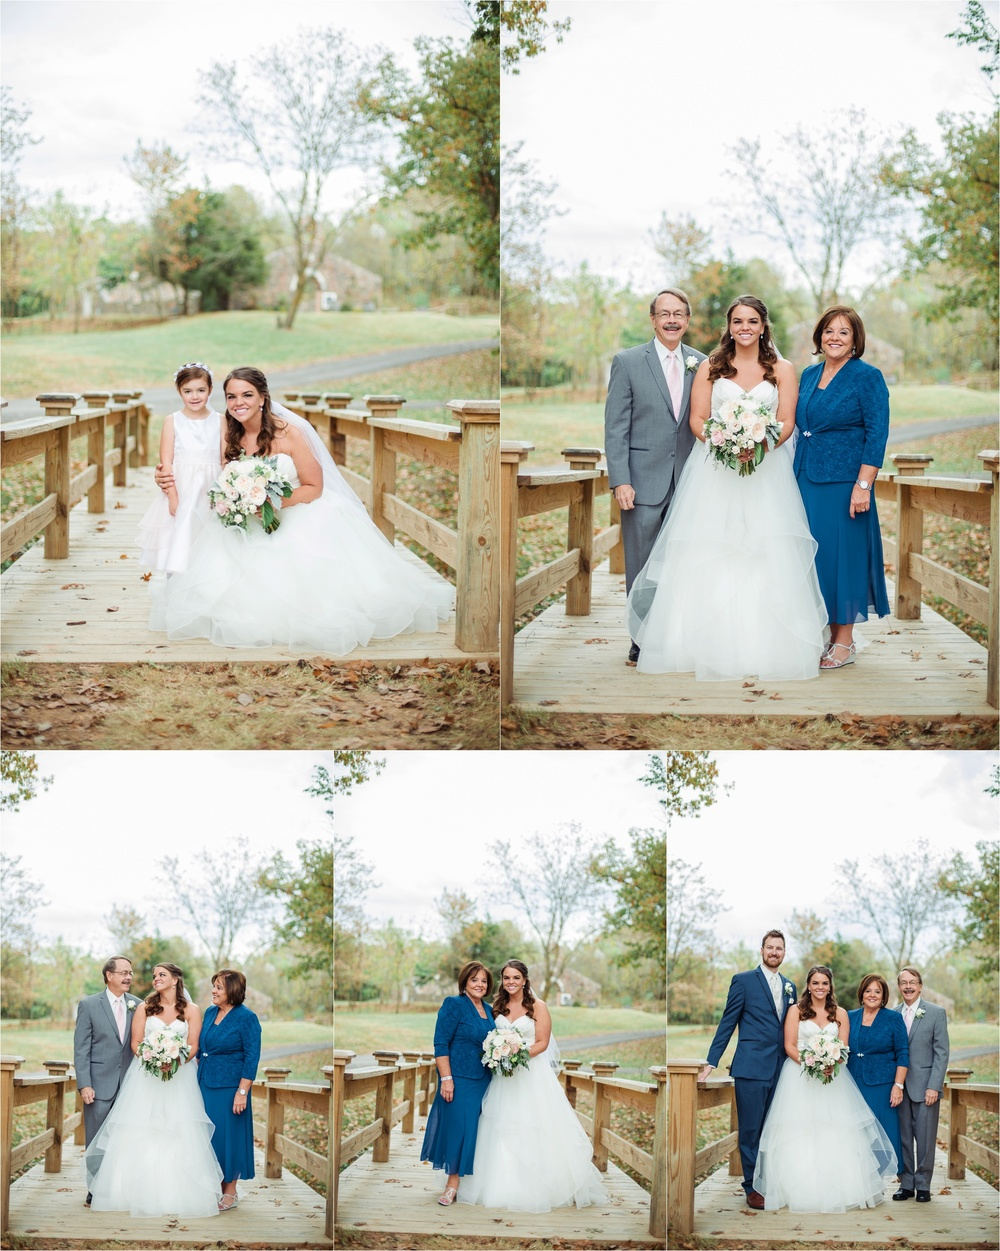 kimberly-paige-photography-fayetteville-arkansas-wedding-photographer_0116.jpg